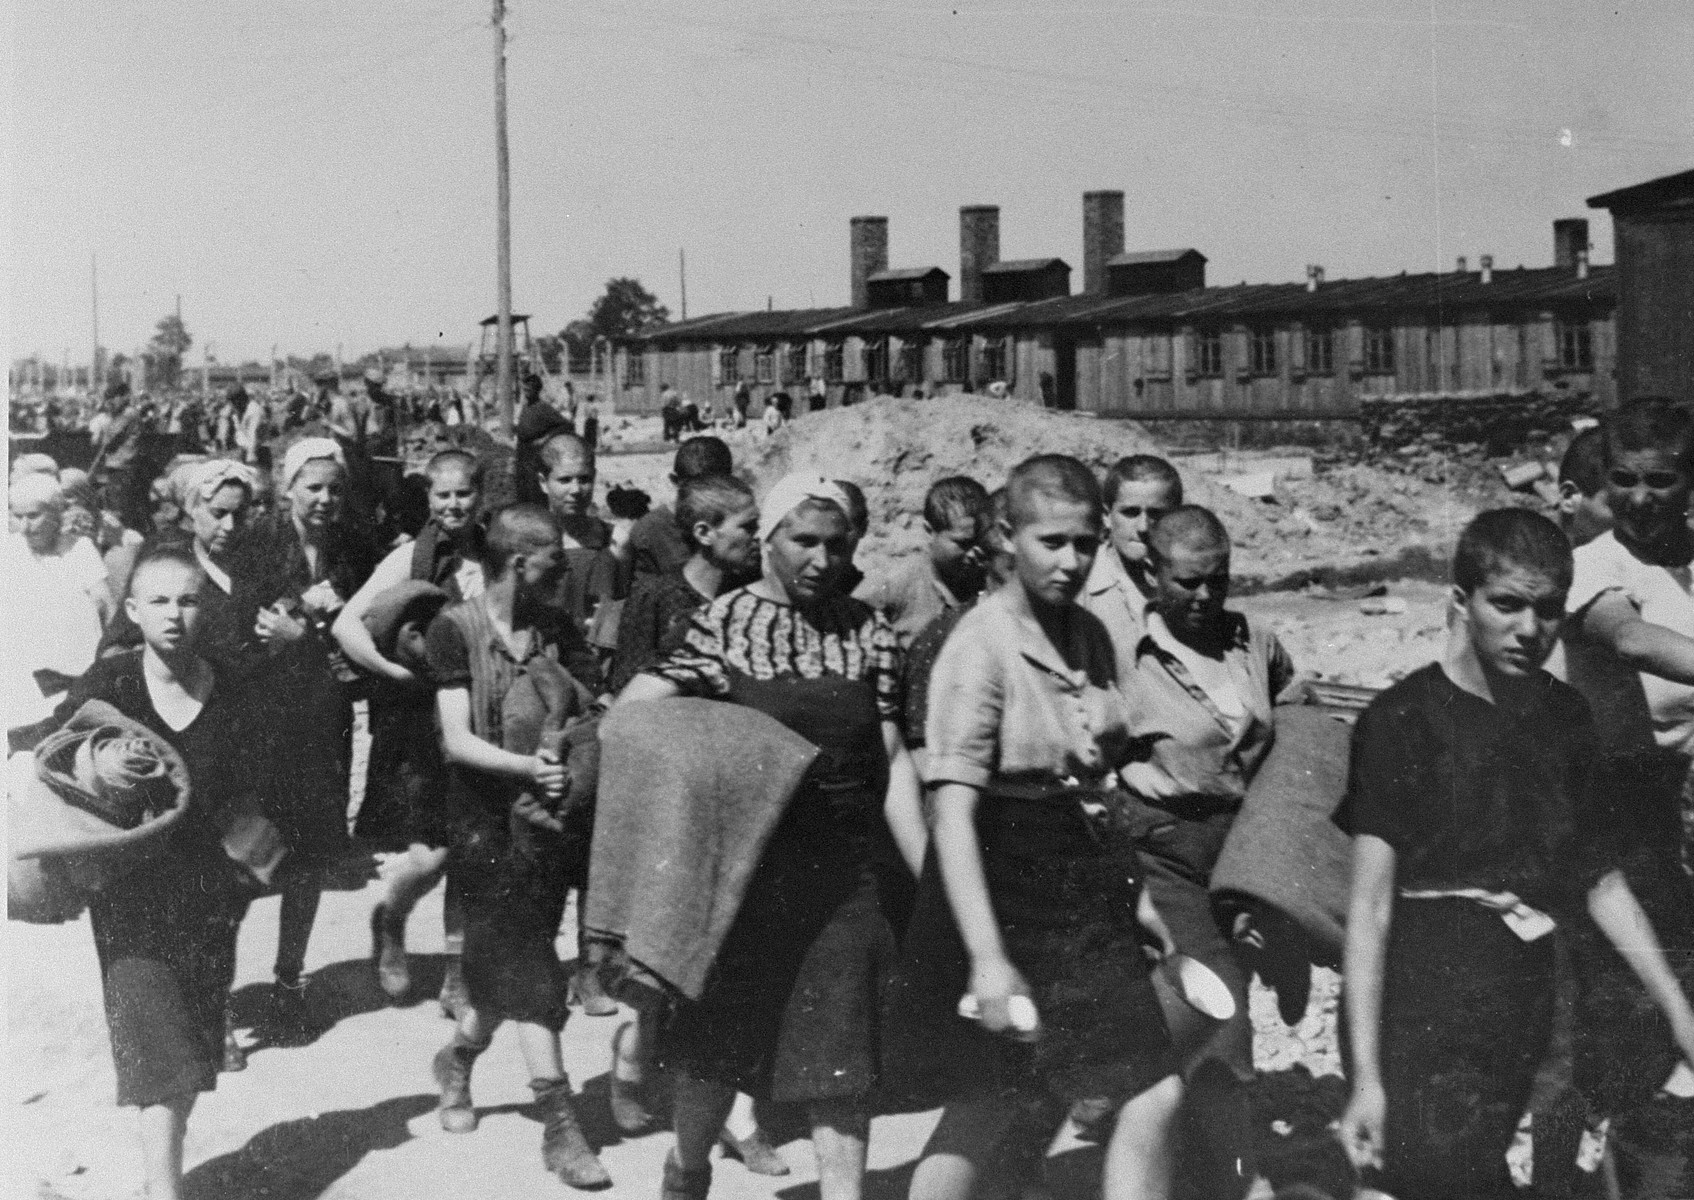 Jewish women from Subcarpathian Rus who have been selected for forced labor at Auschwitz-Birkenau, march toward their barracks carrying bed rolls after disinfection and headshaving.